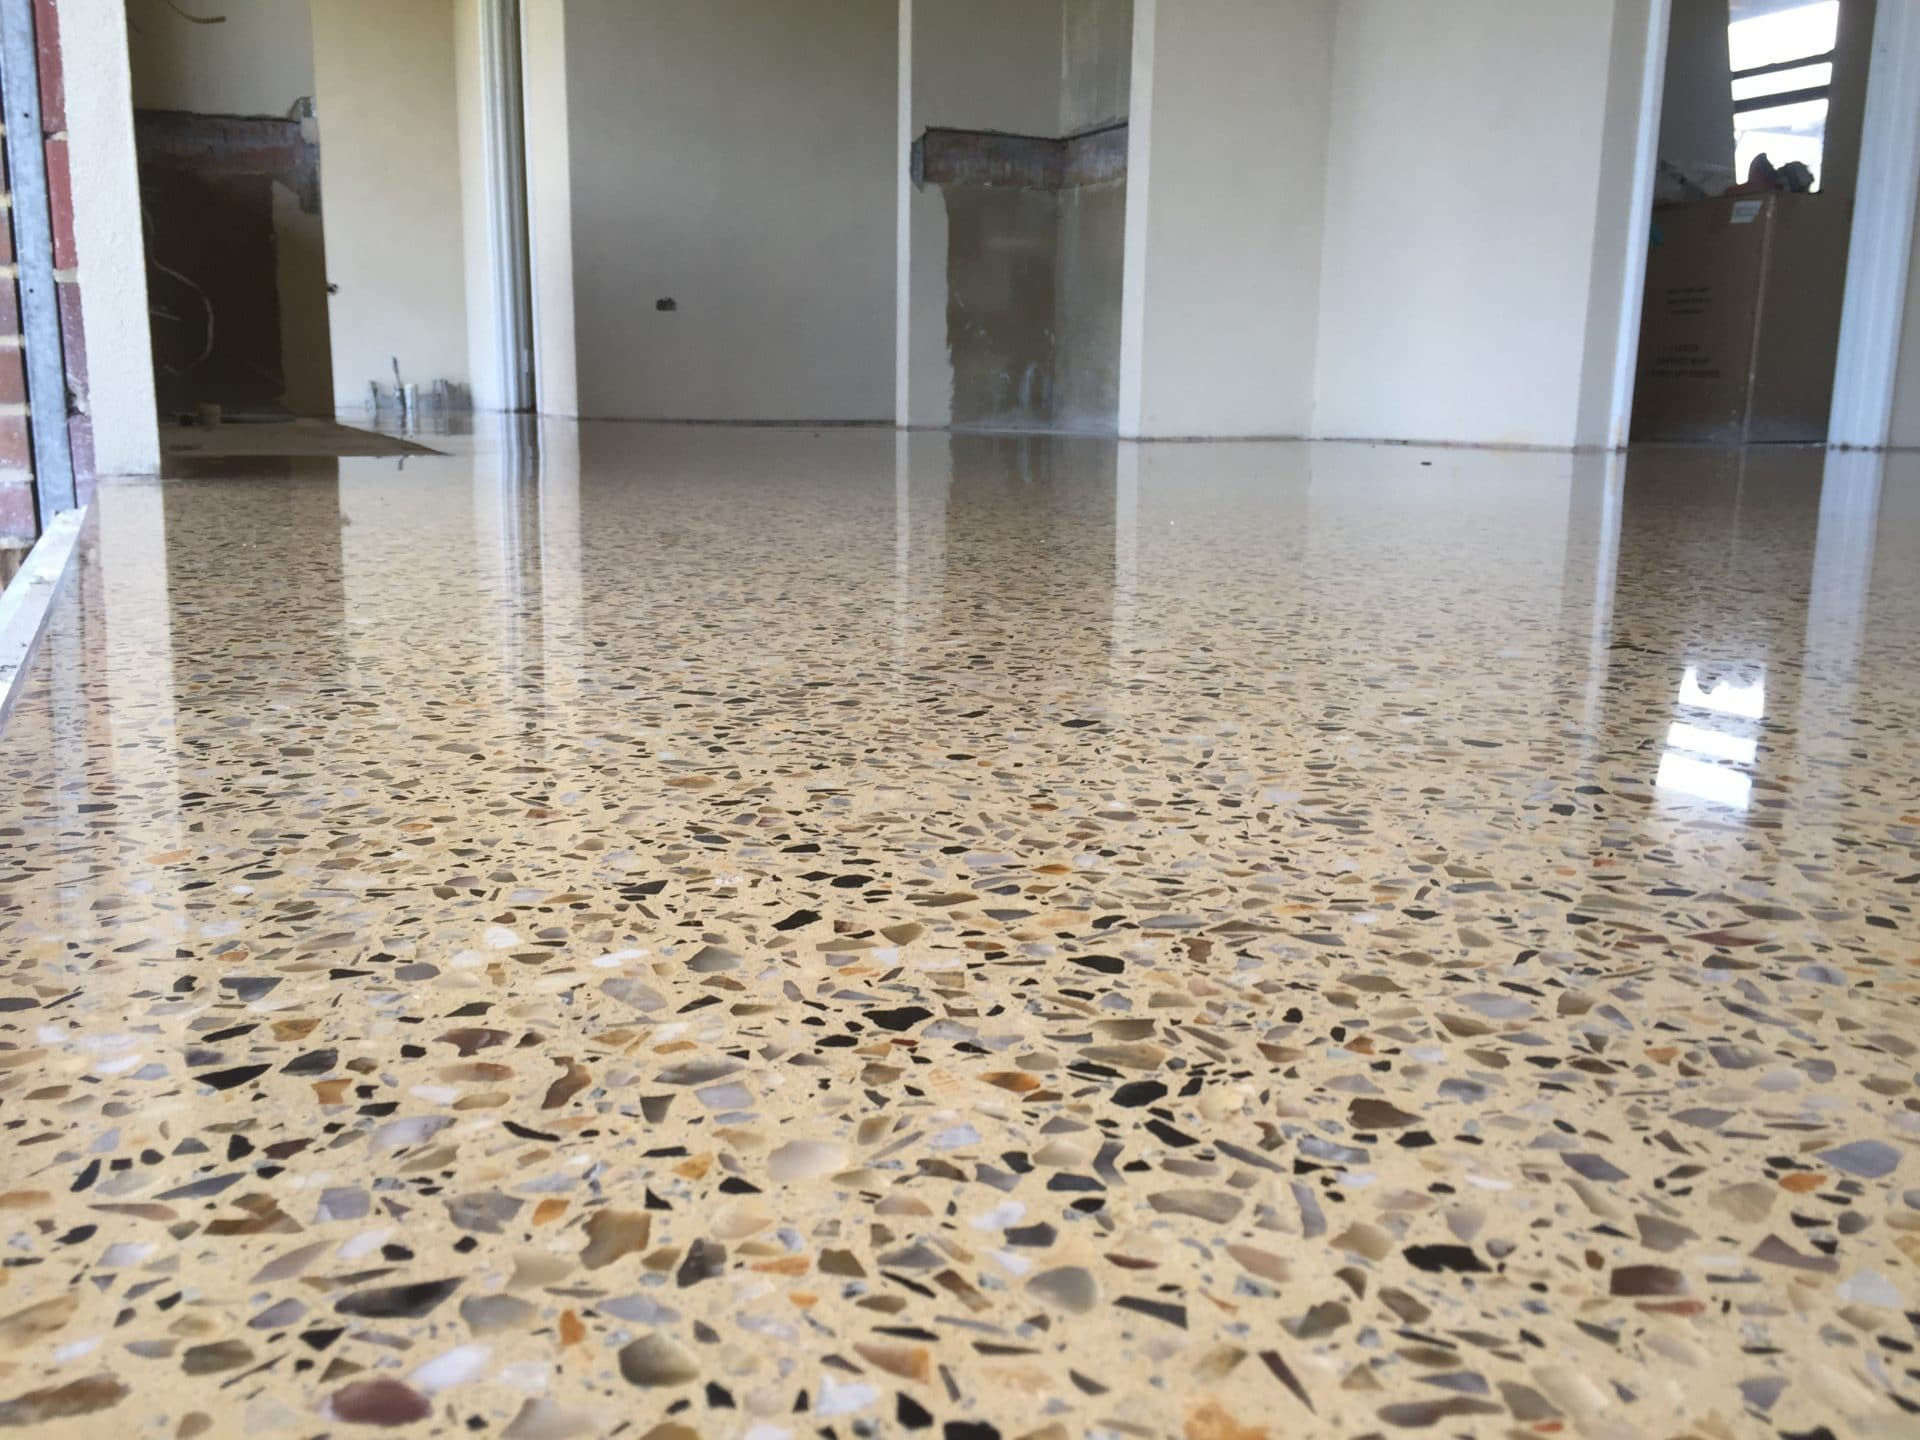 polished concrete floor. Wonderful Floor Polished Concrete Floors In The Home Intended Floor H